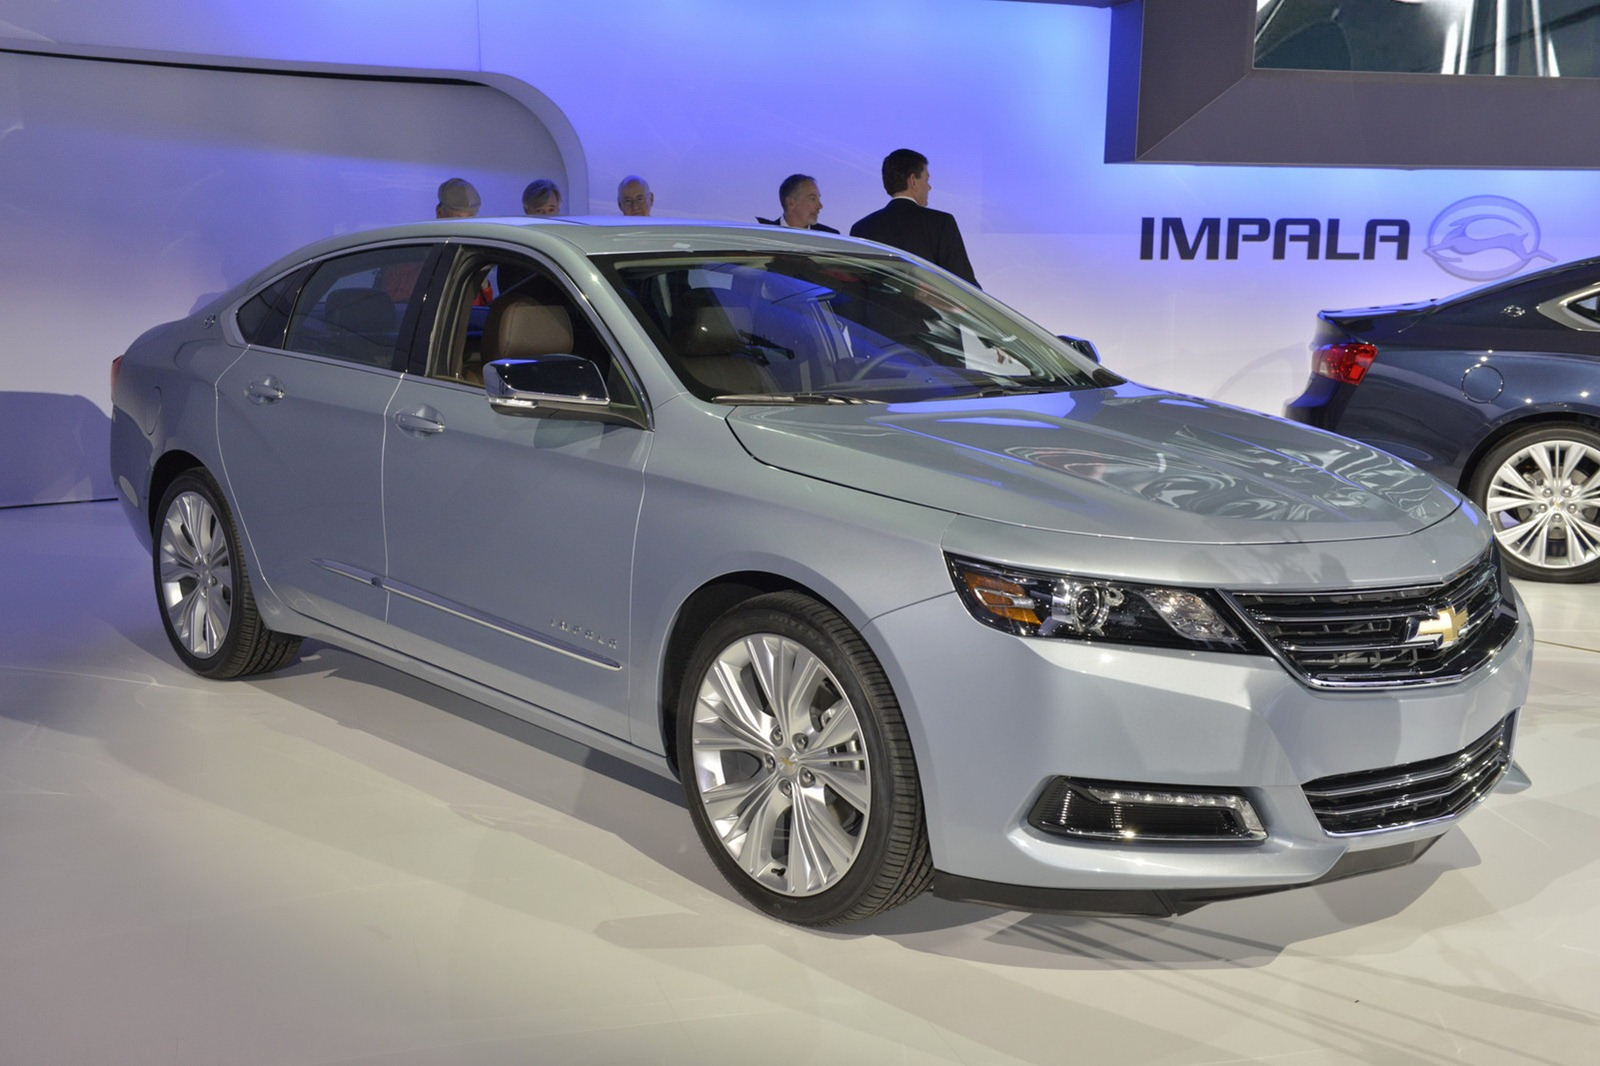 2014 chevrolet impala prices to start from 27 535 available with 4 cylinder and v6 engines. Black Bedroom Furniture Sets. Home Design Ideas